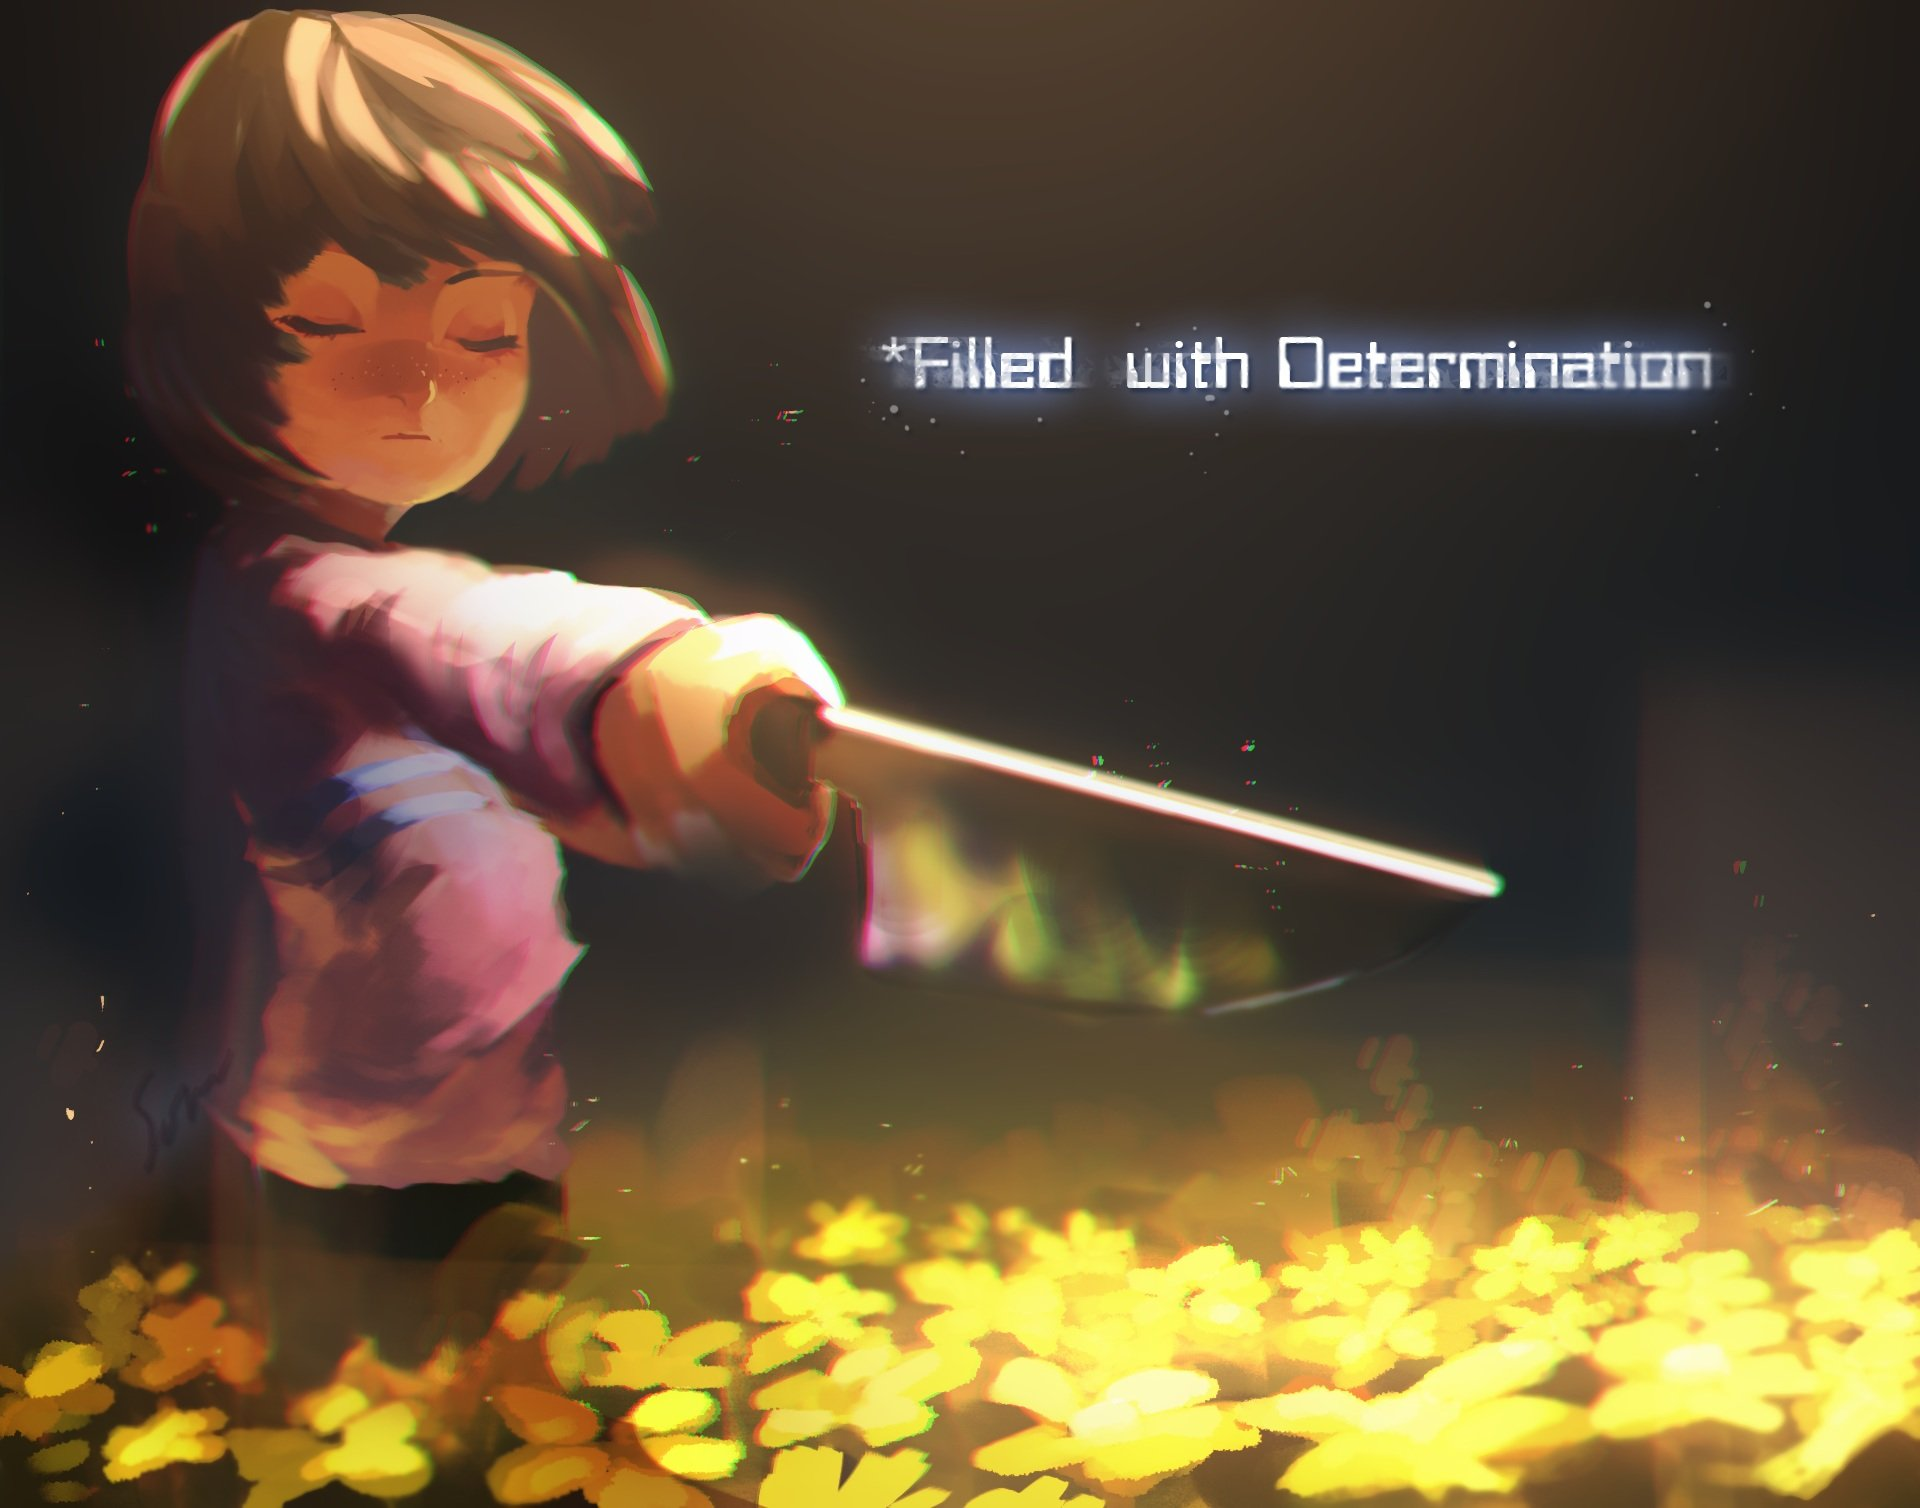 cropped frisk undertale knife legeh undertale wallpaper 1920x1508 877490 wallpaperup